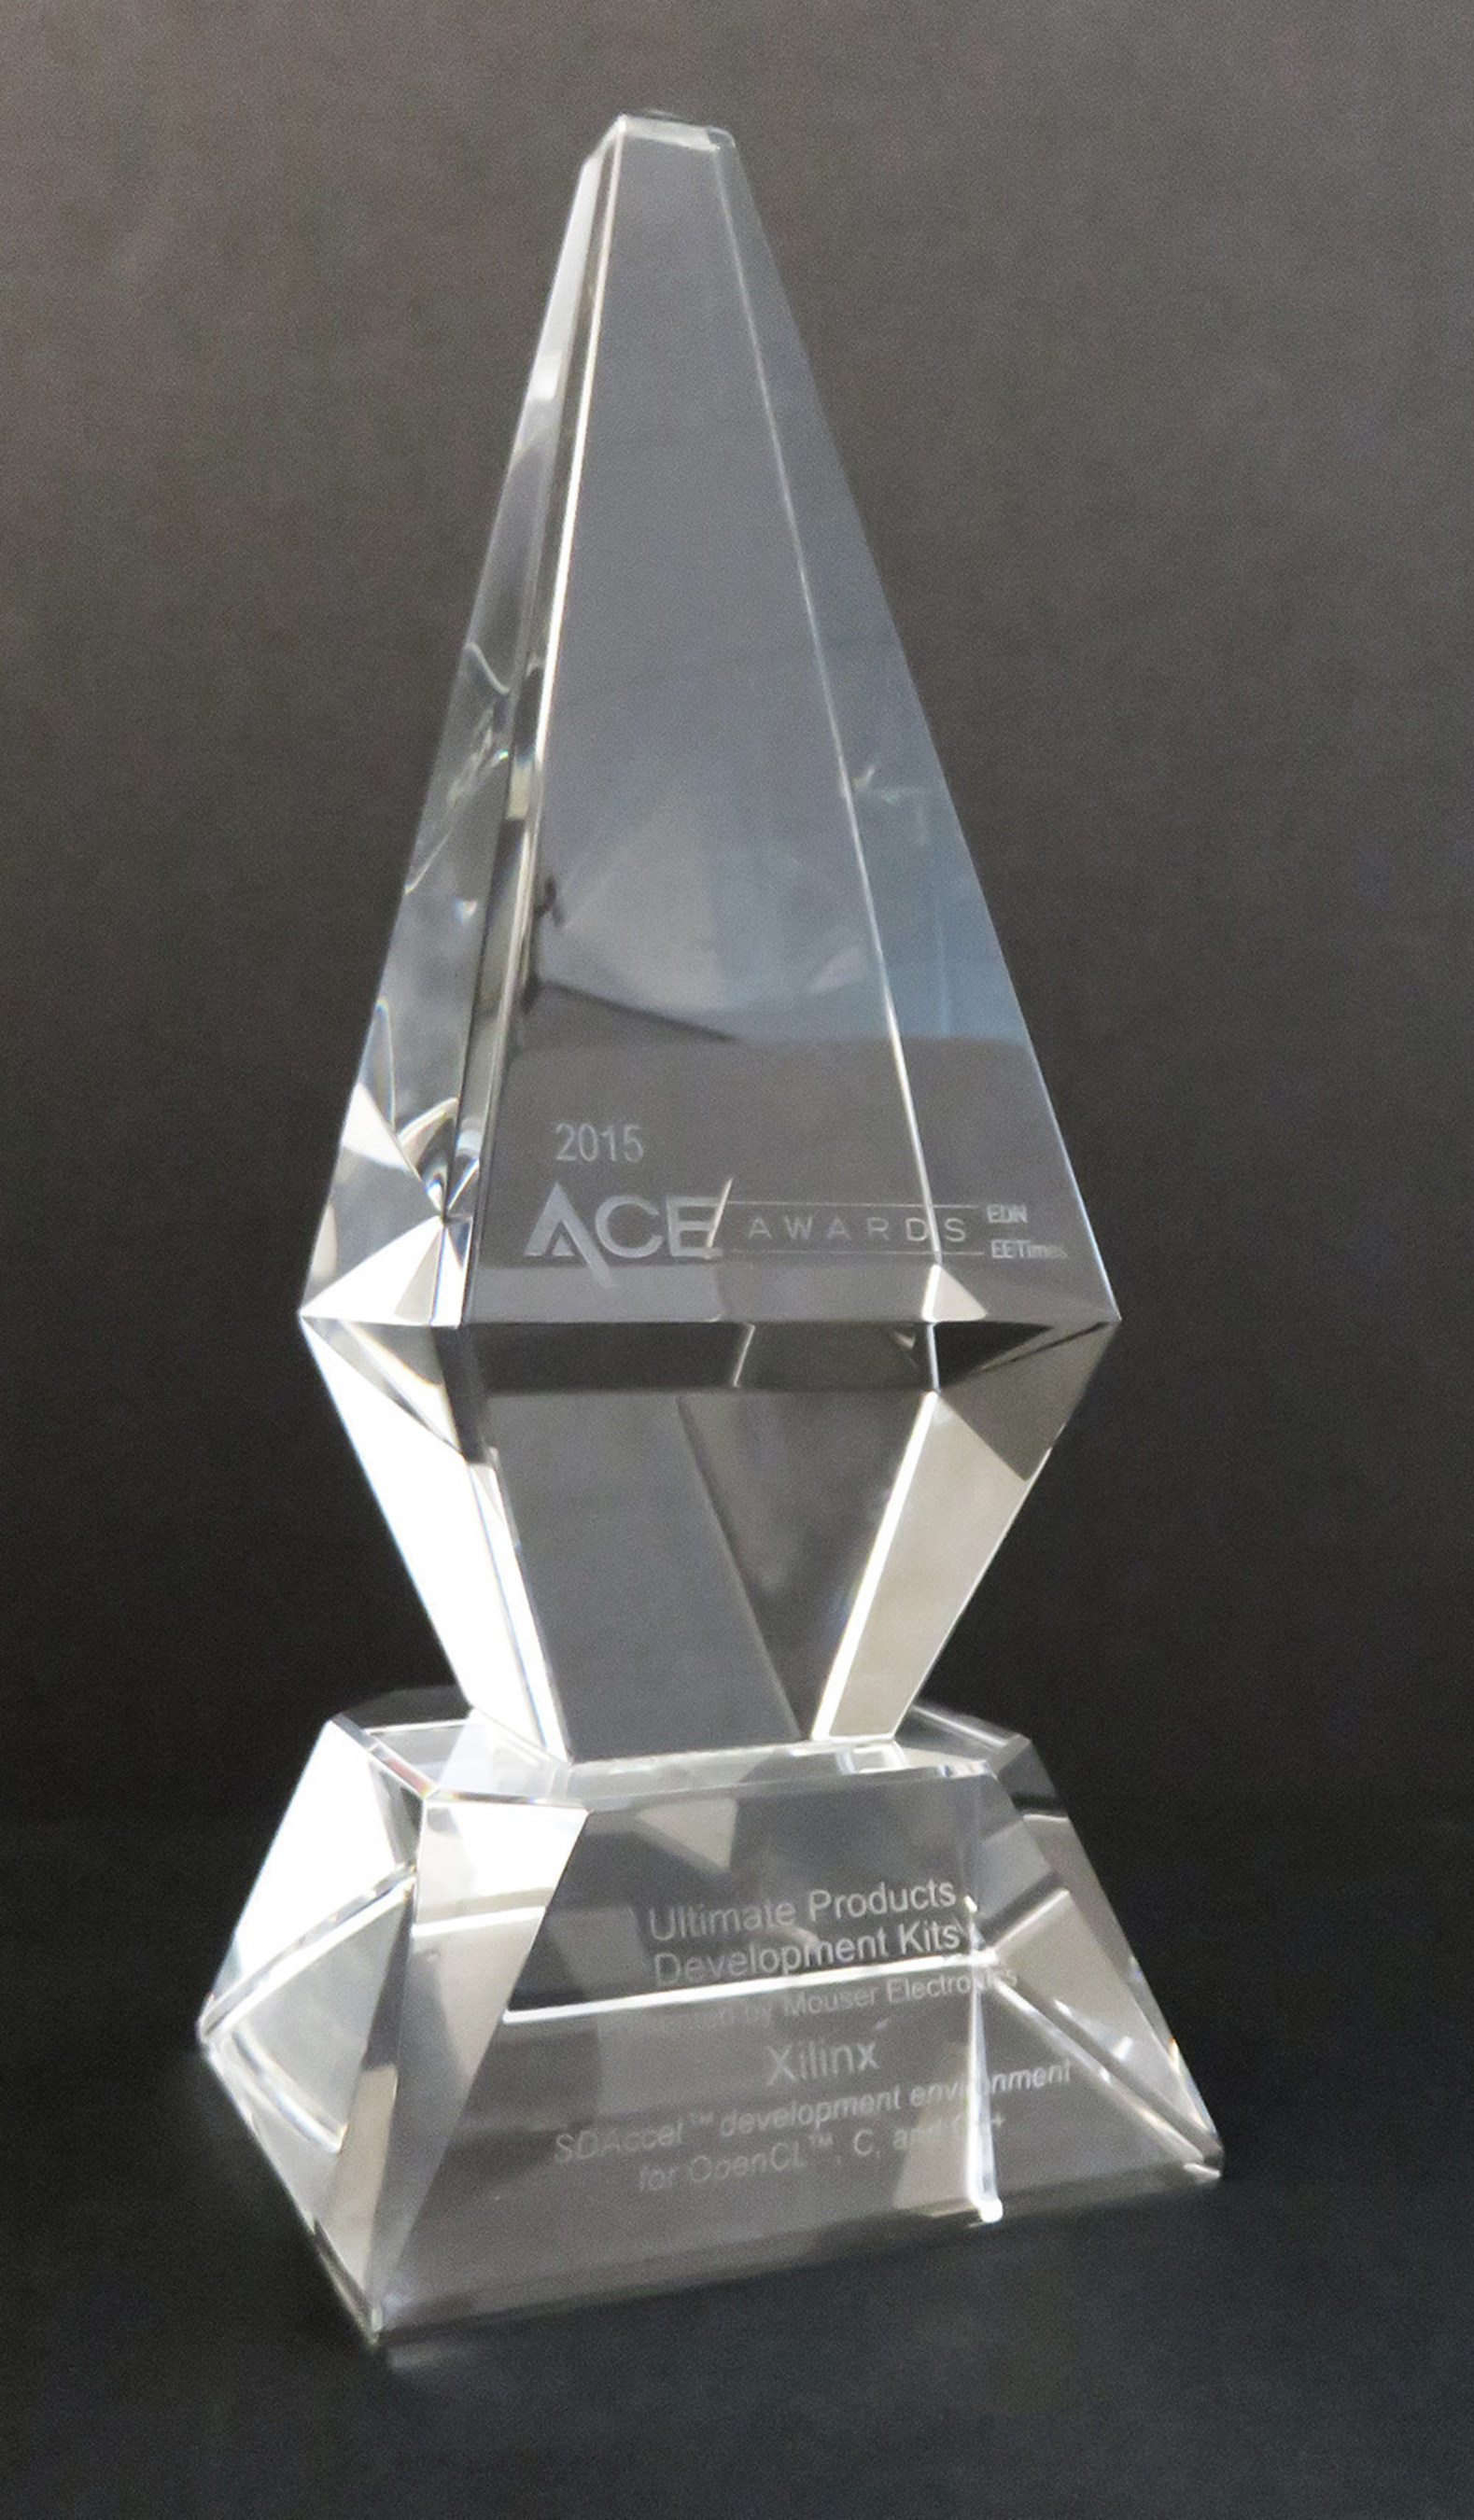 Xilinx Receives Prestigious 2015 EE Times and EDN ACE Award for 'Software Defined' SDAccel Development Environment